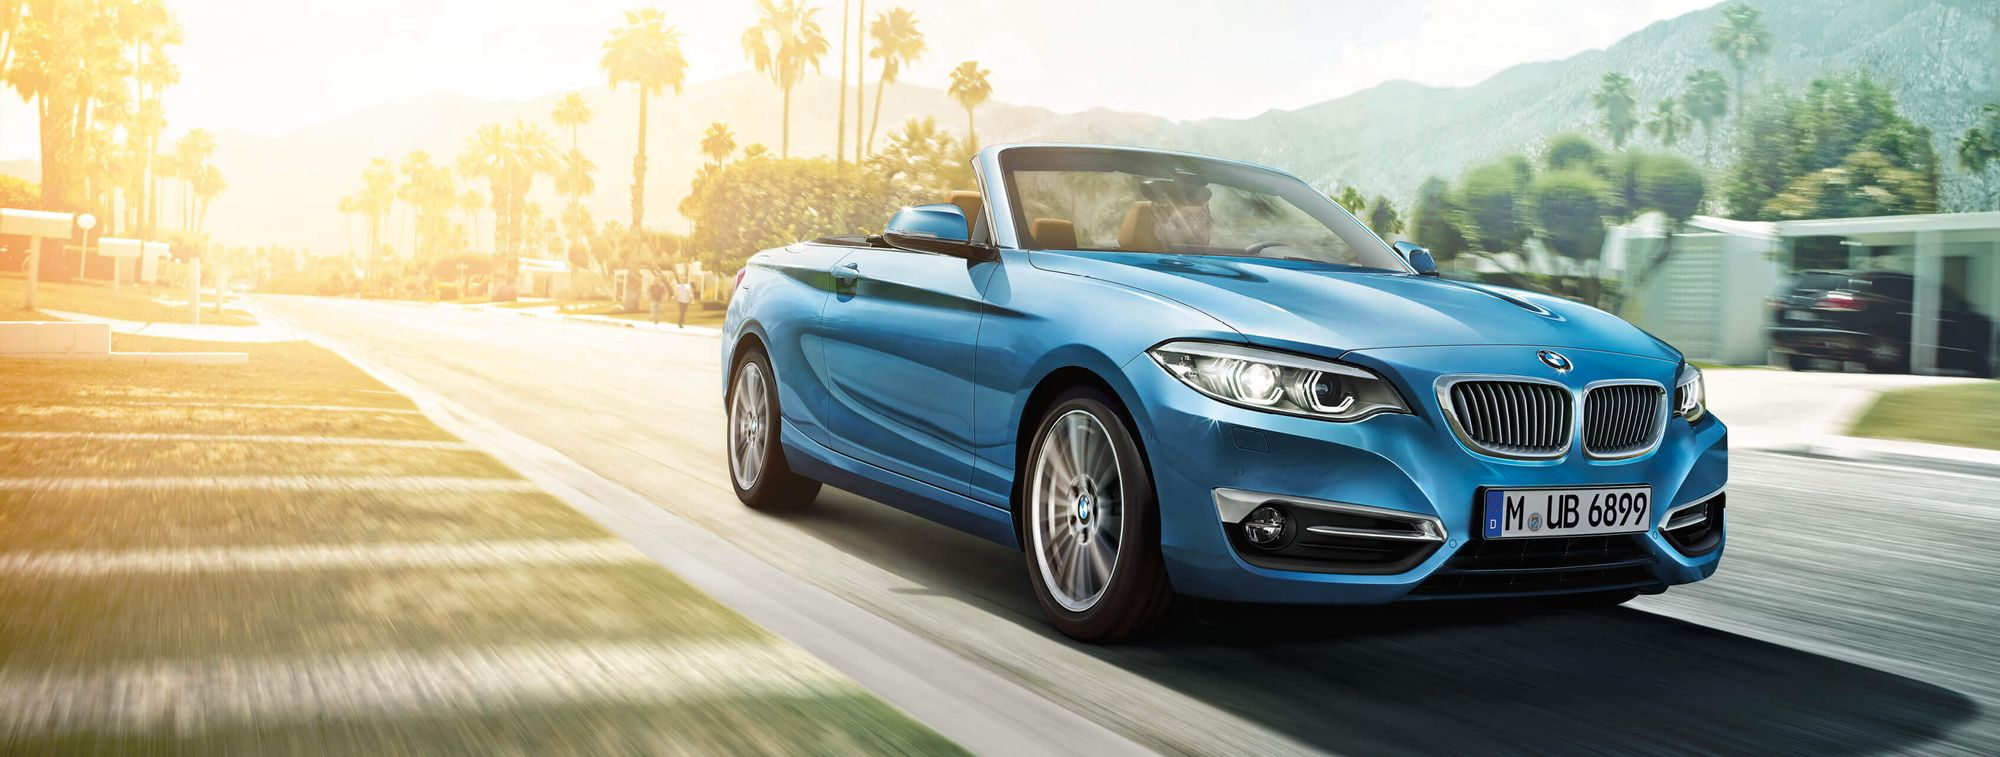 THE 2: Das BMW 218i Cabrio